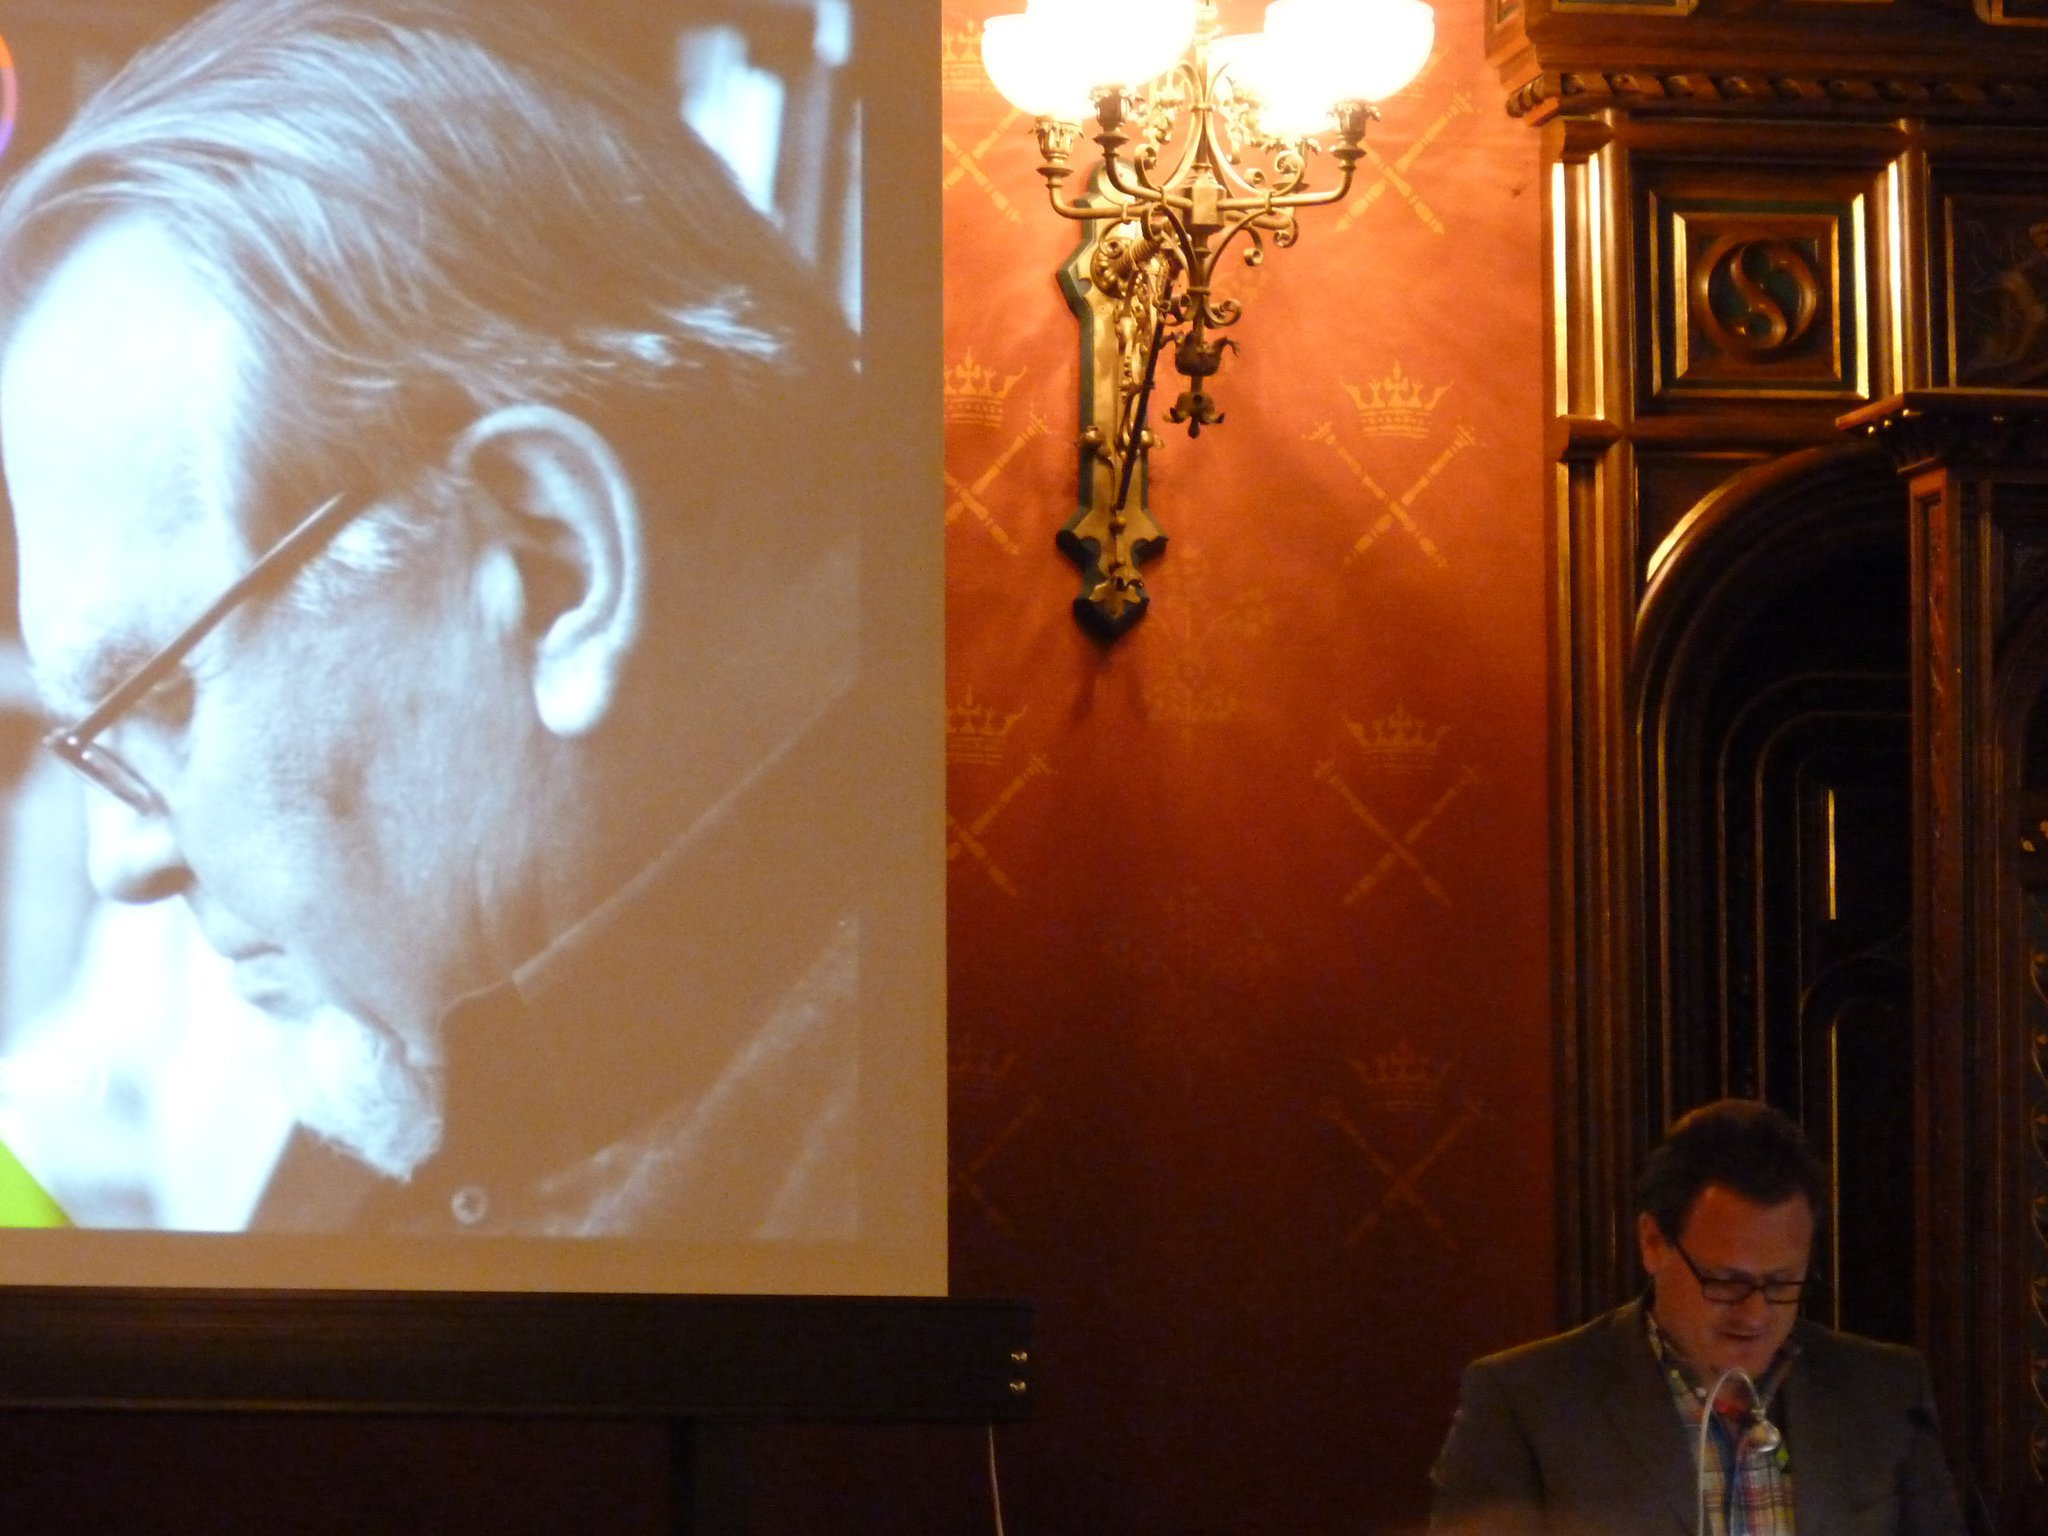 Milosz on my mind. (Speaking at the Milosz Year 2011 conference in Krakow)